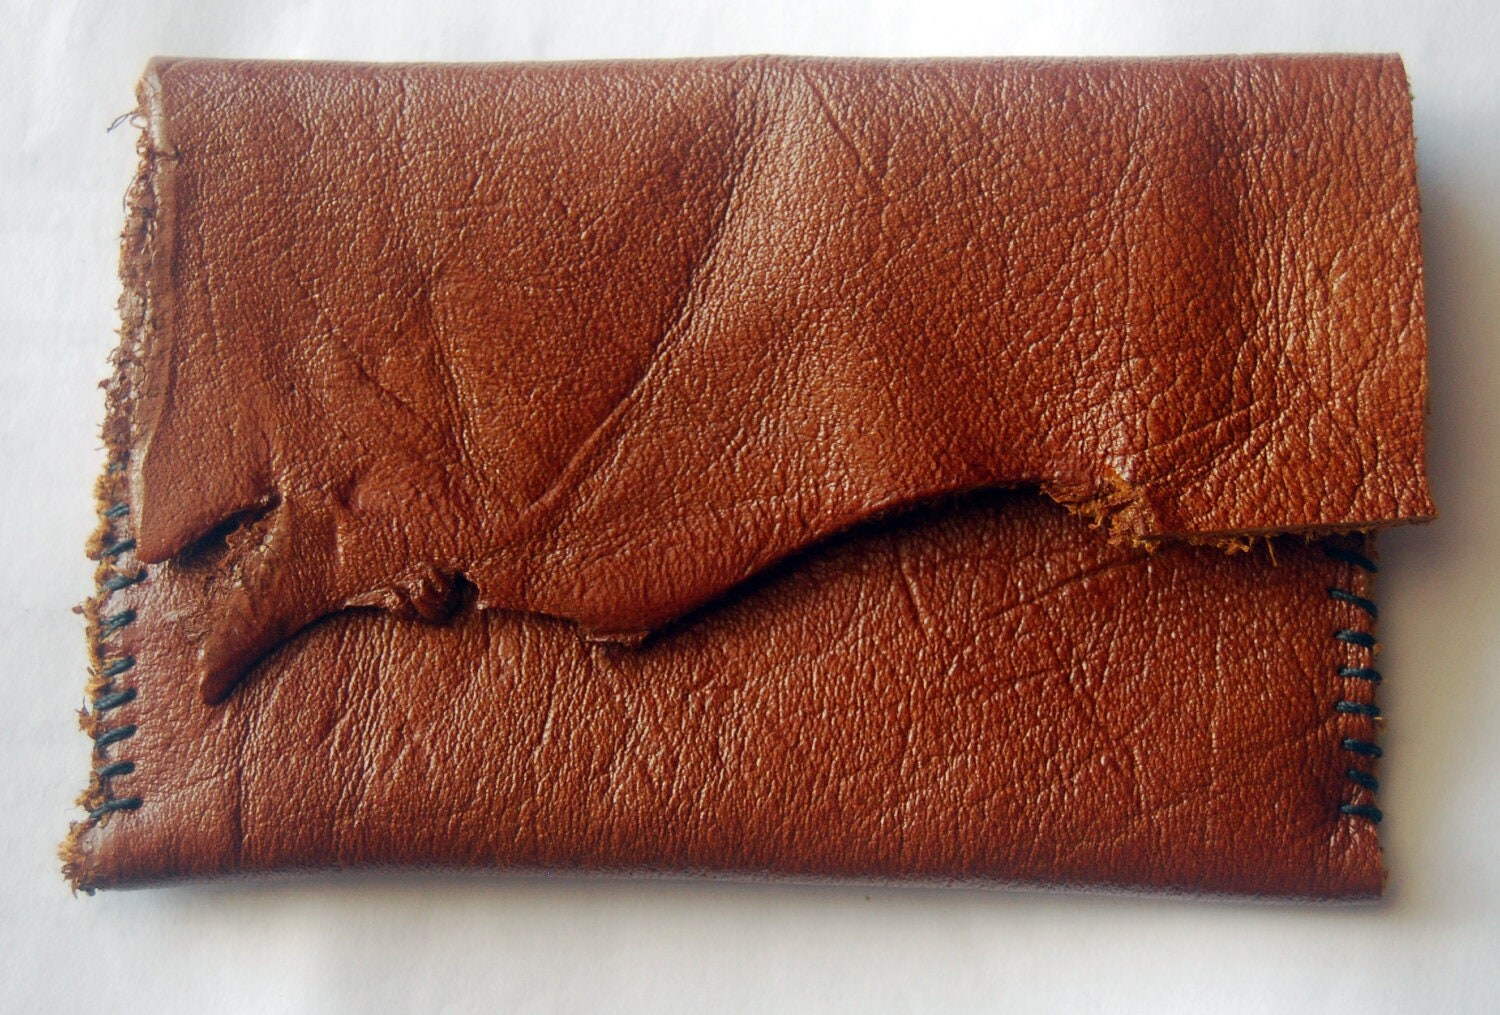 Hand-stitched Leather Credit / Business Card Pouch - Rustic Chestnut